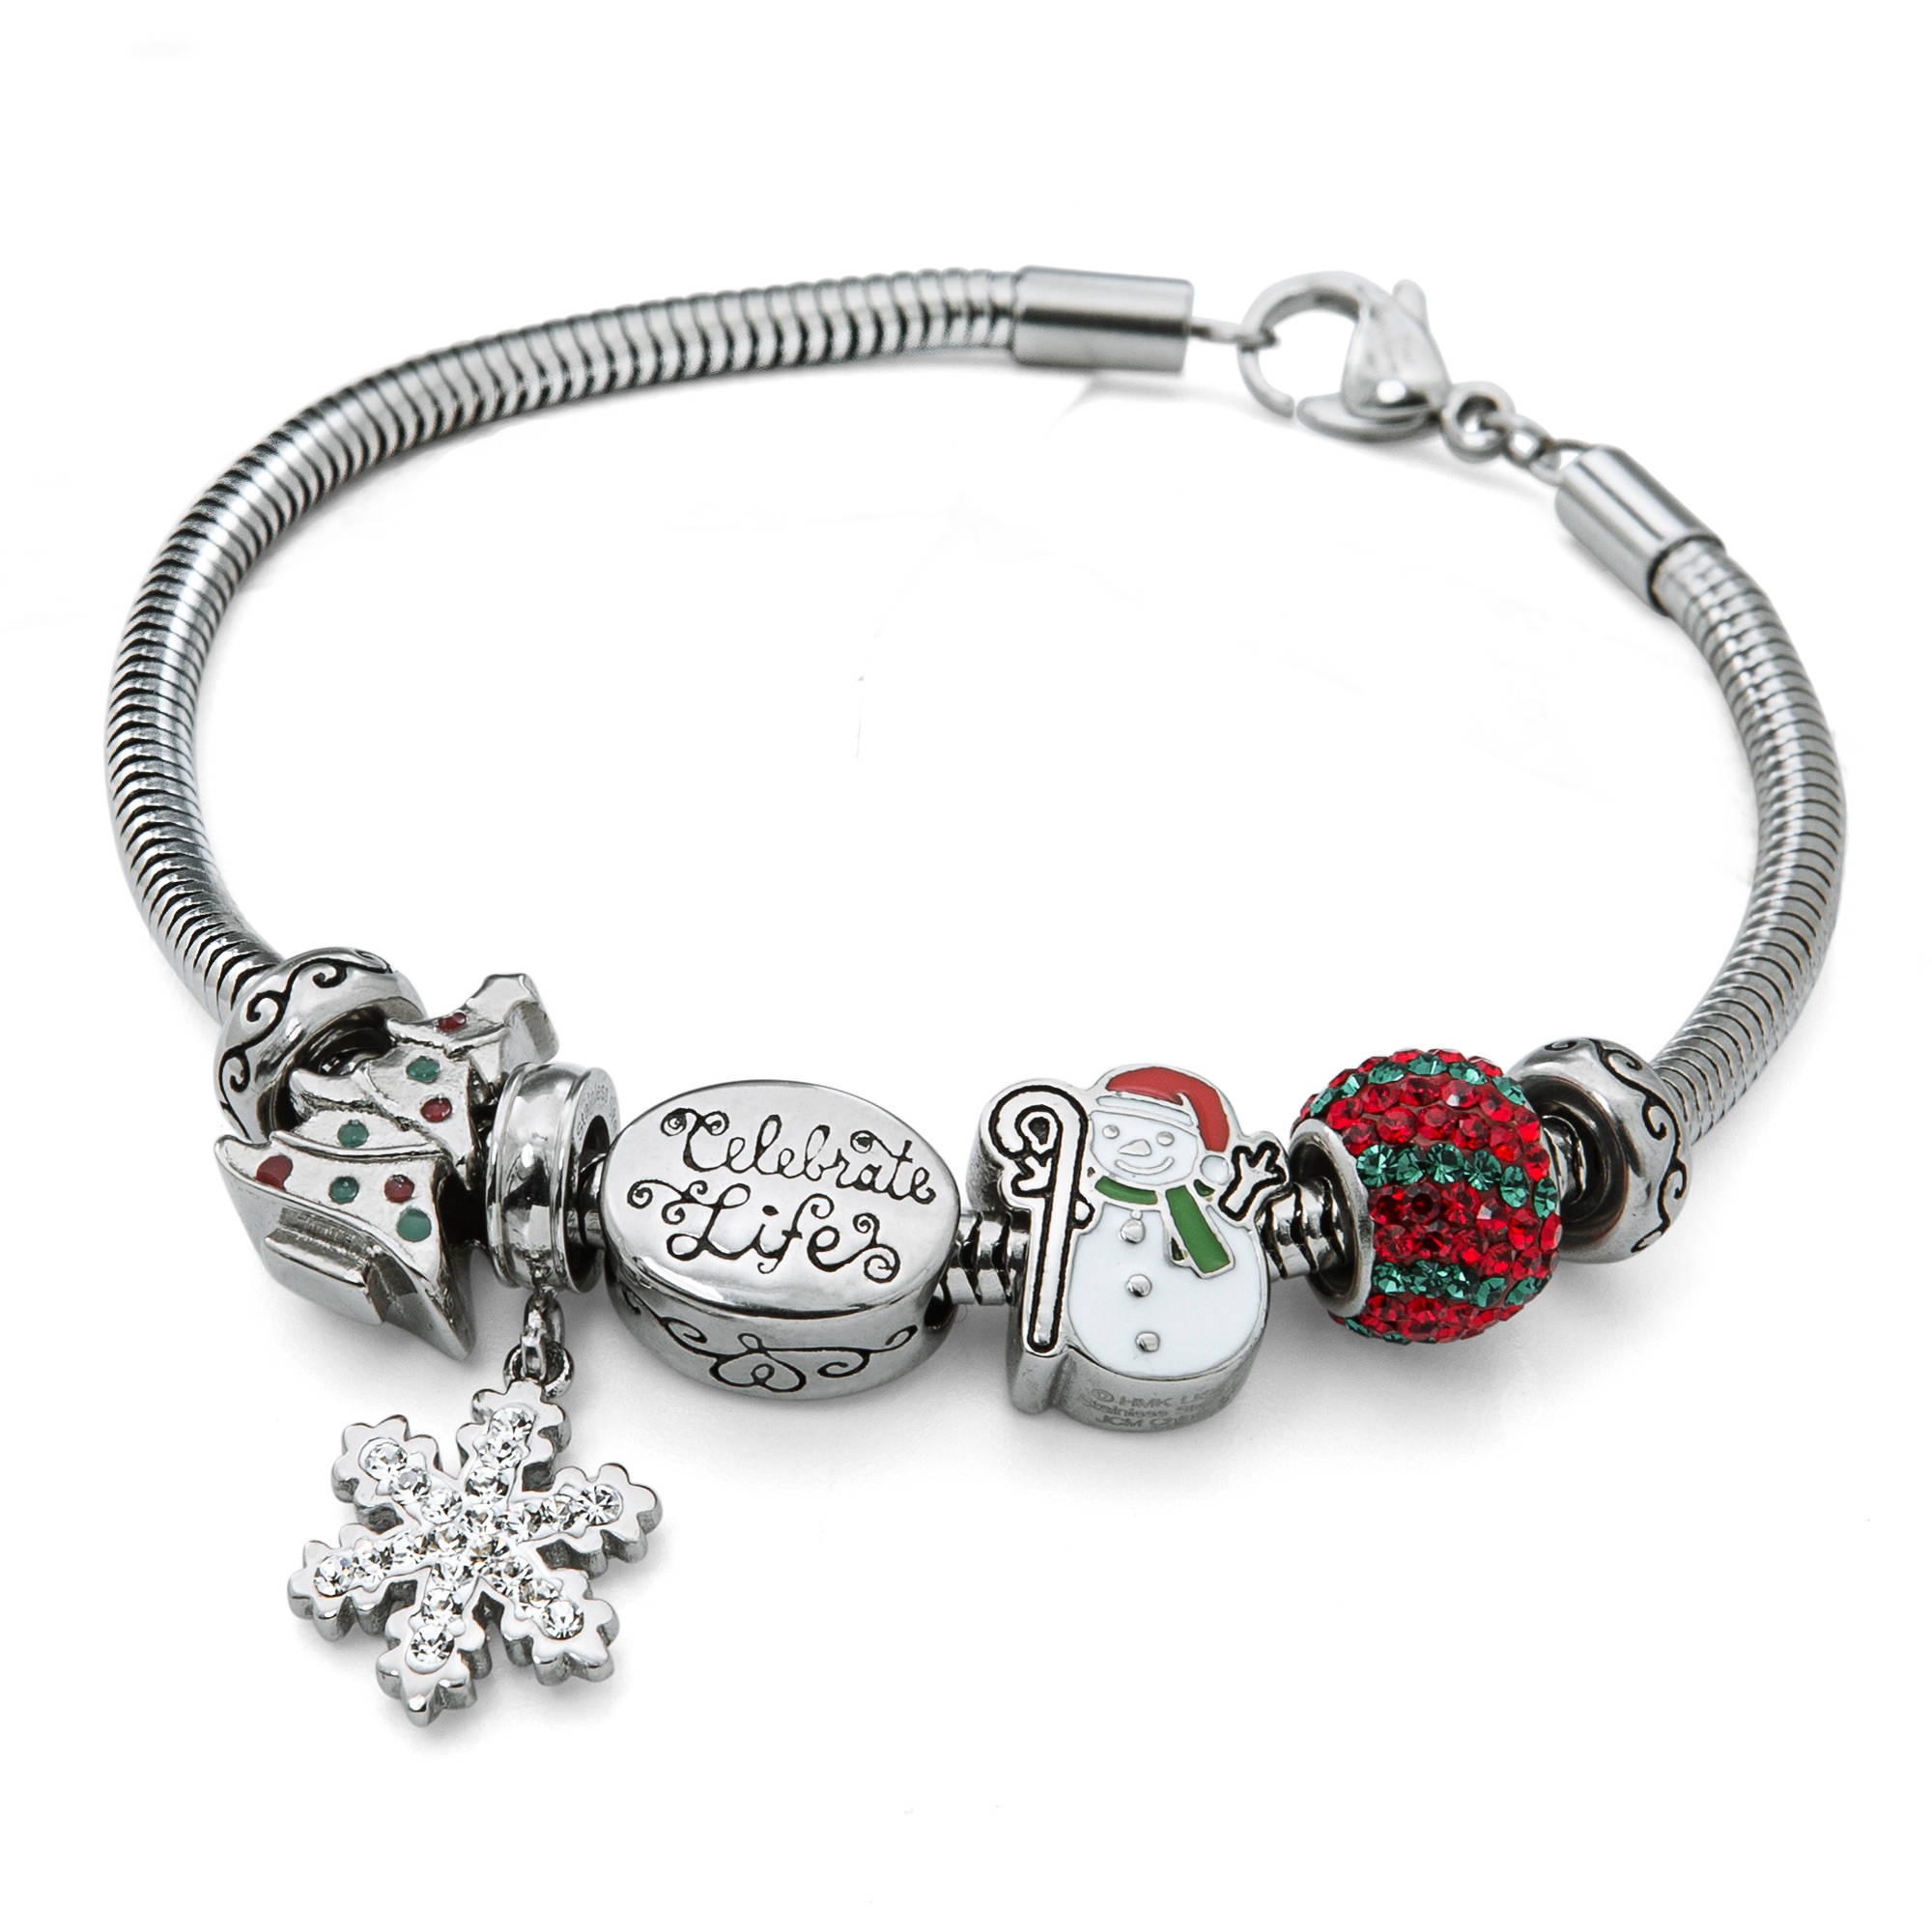 Connections From Hallmark Stainless Steel Christmas Bead Bundle Bracelet